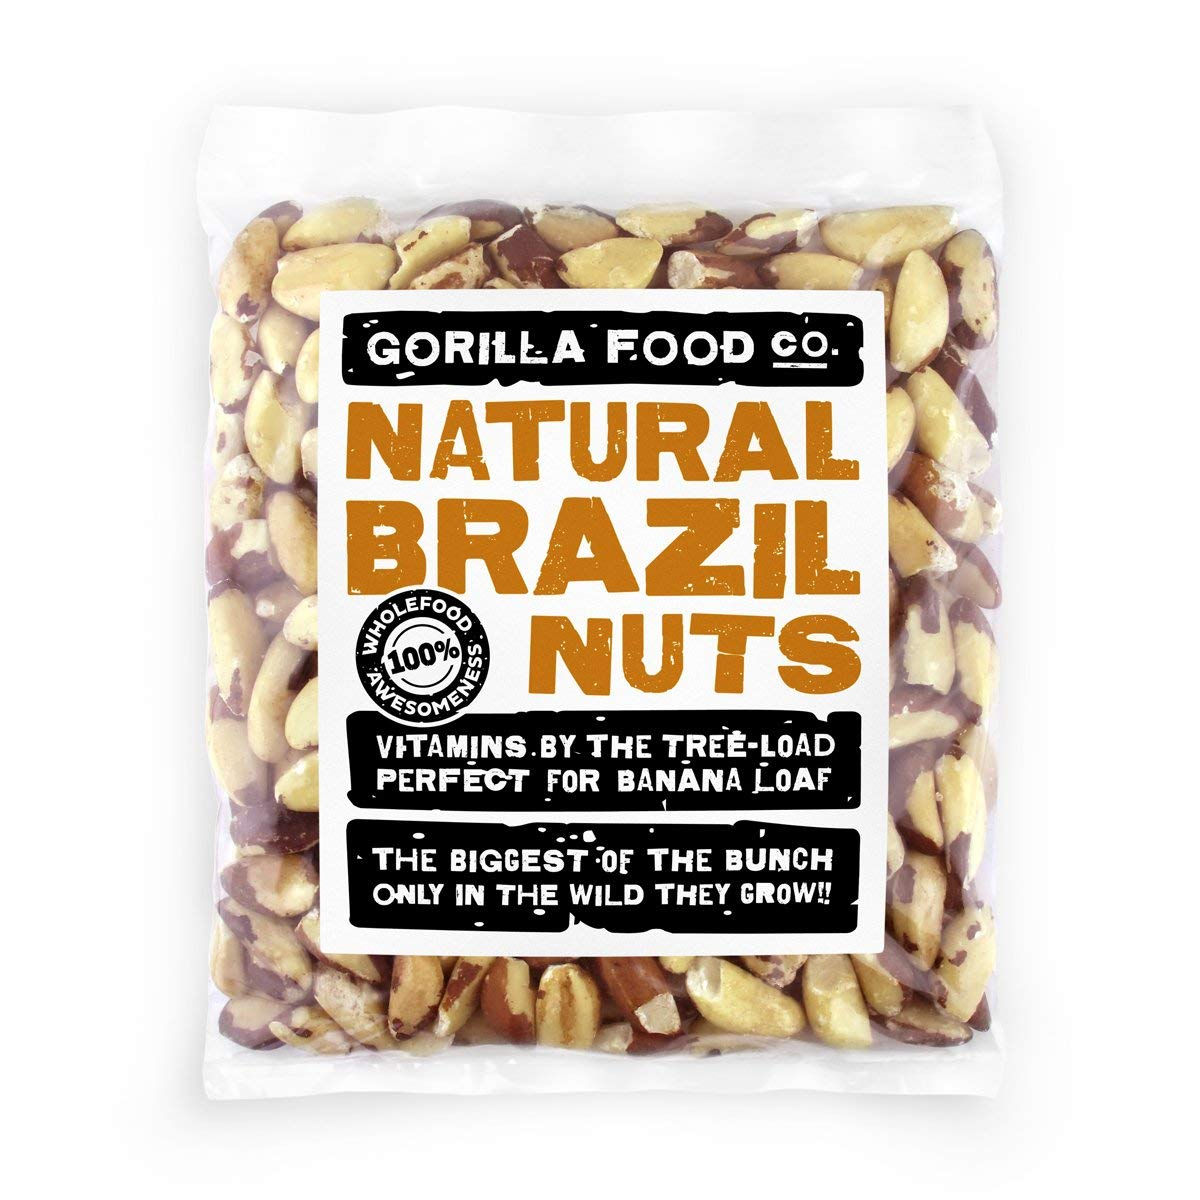 Premium Brazil Nuts Raw Whole - 8oz Resealable Bag by Gorilla Food Co